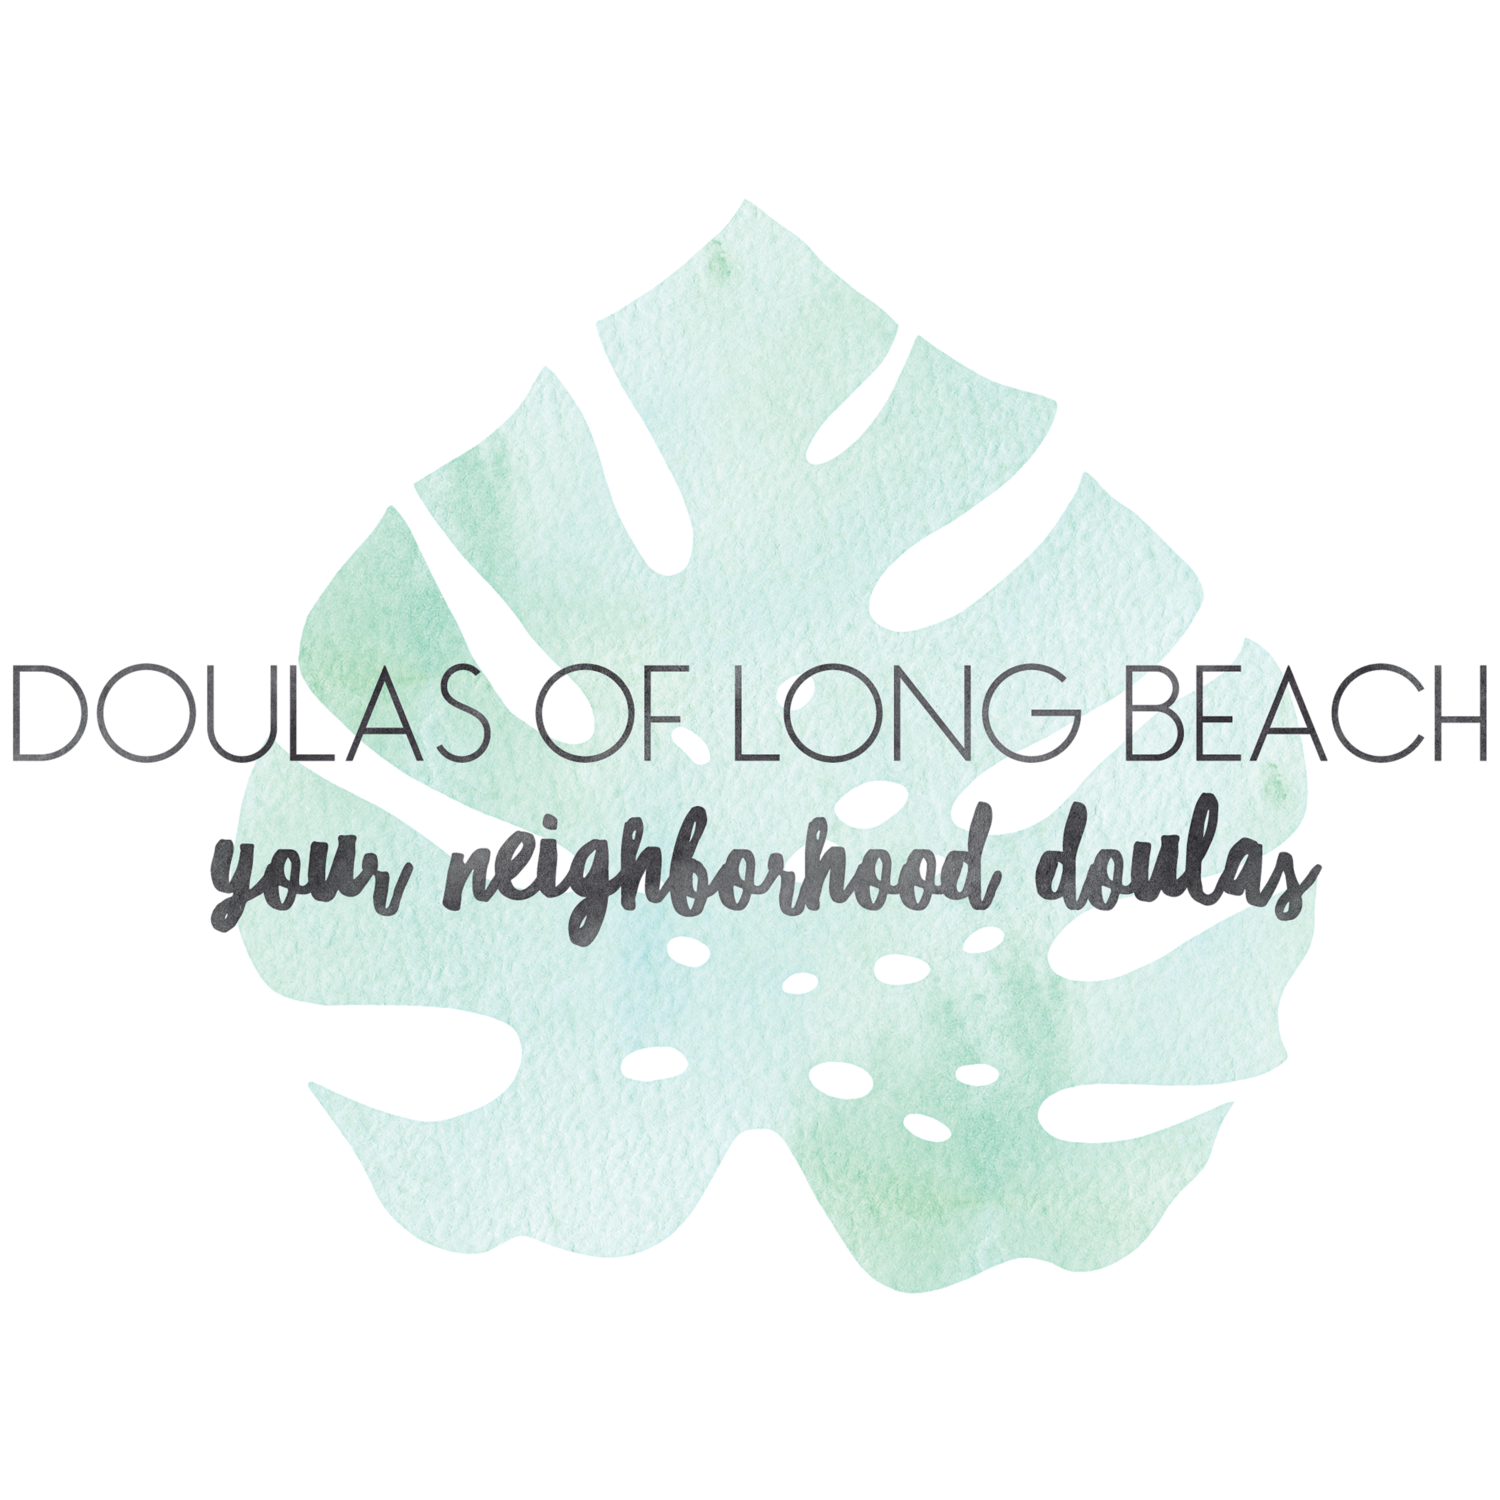 Doulas of Long Beach - Your Neighborhood Doulas